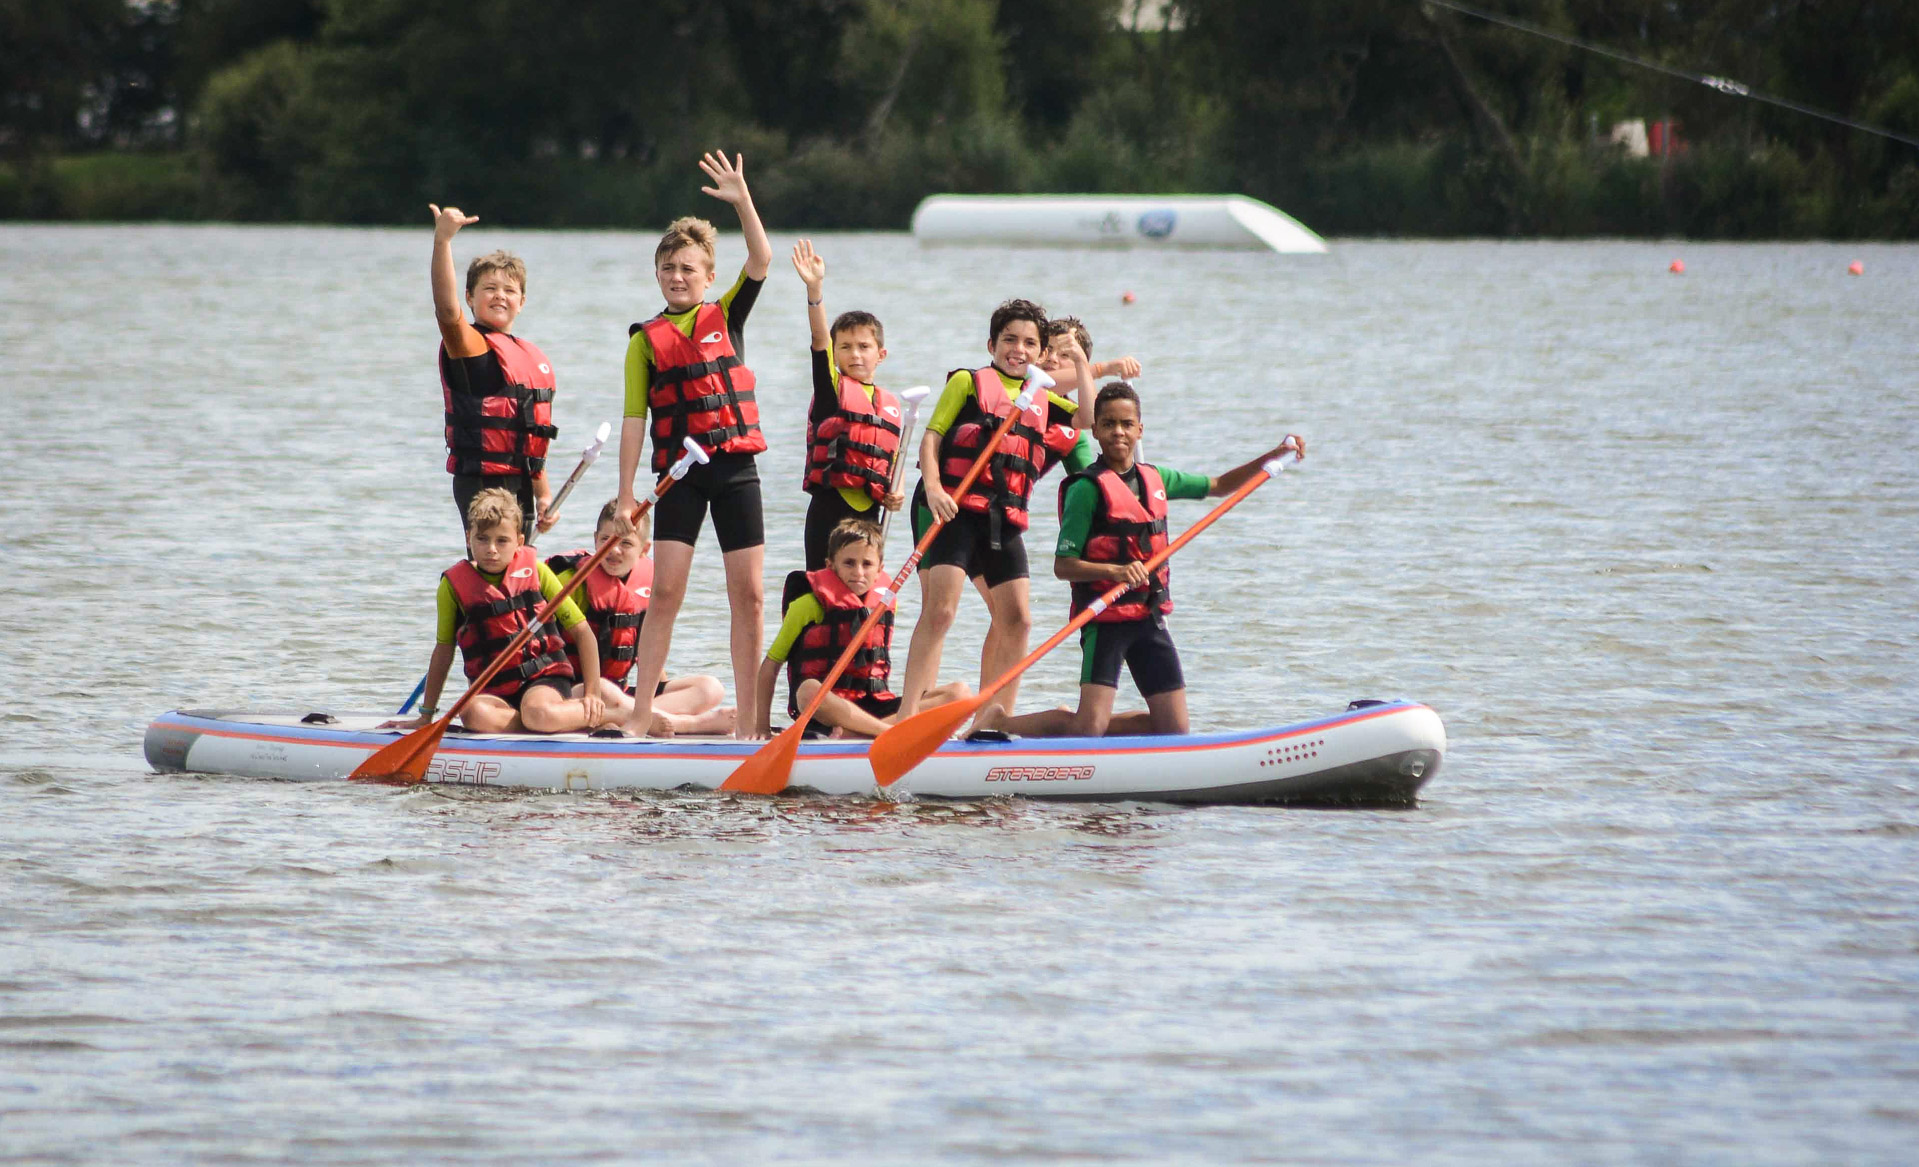 Le Minou Surf Club propose des cours et initiations de stand up paddle sur le lac.